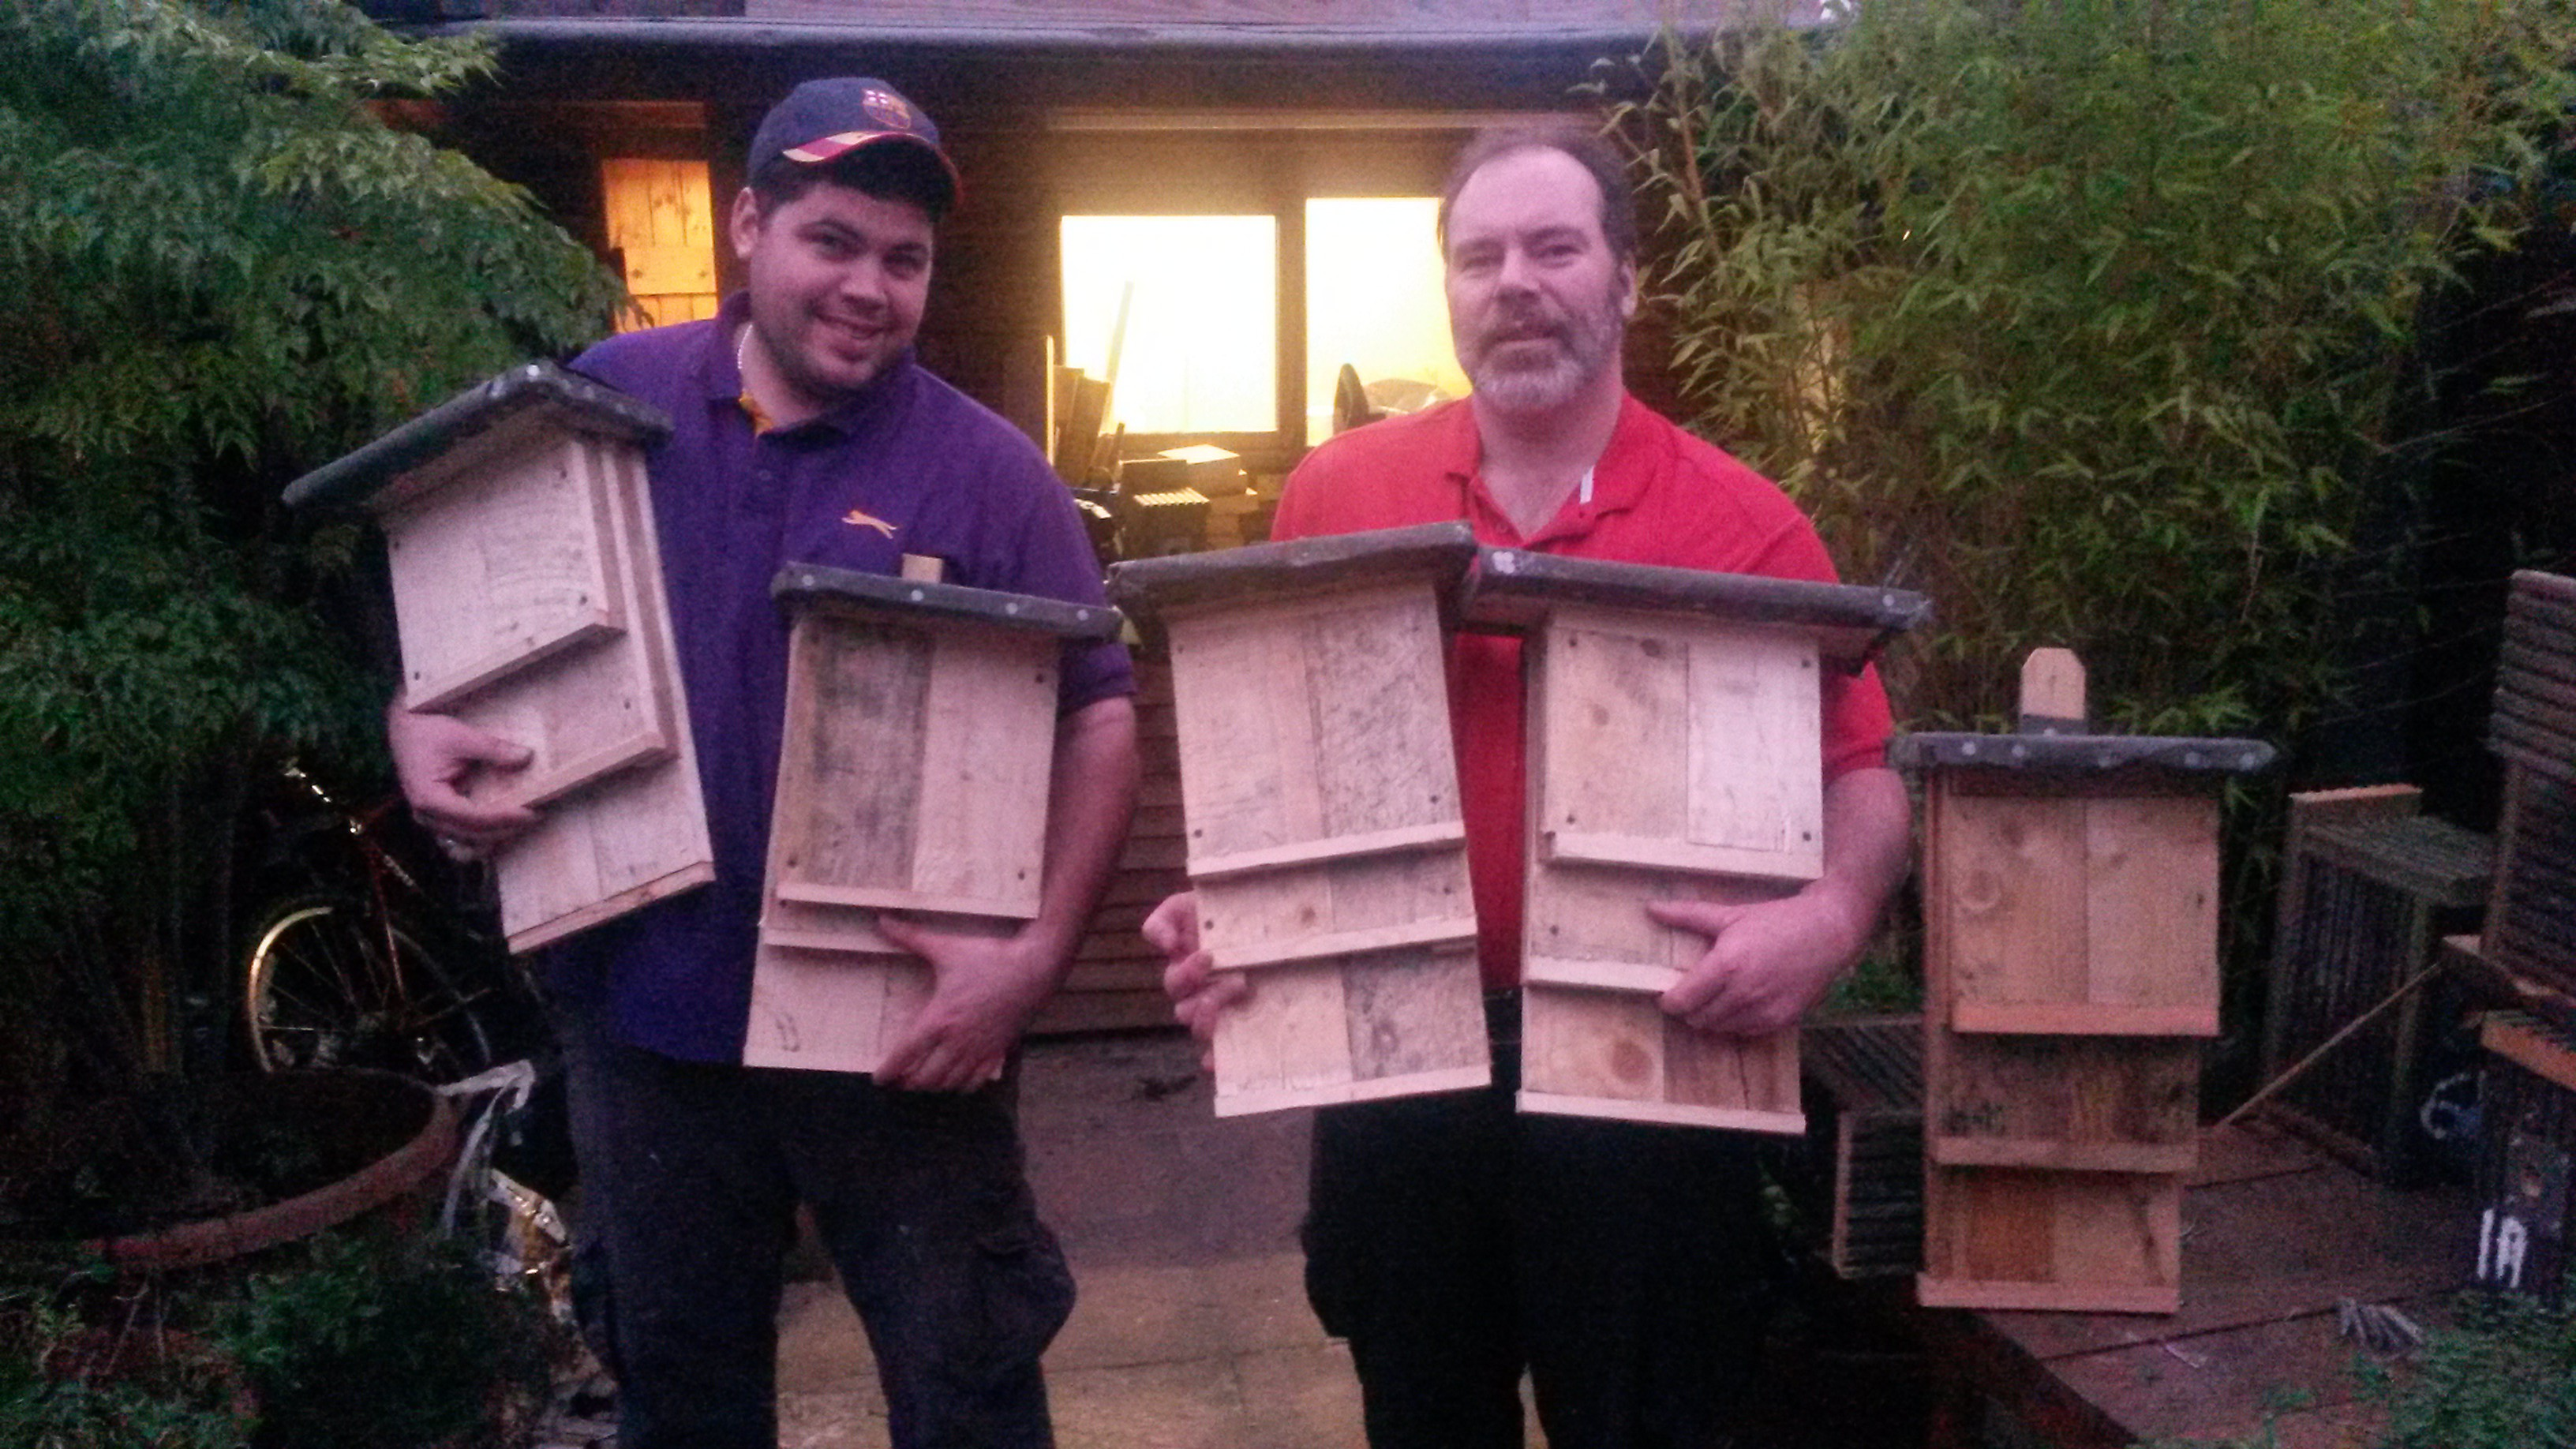 Duncan Devine (r) and Darren with Bat Boxes they have made.